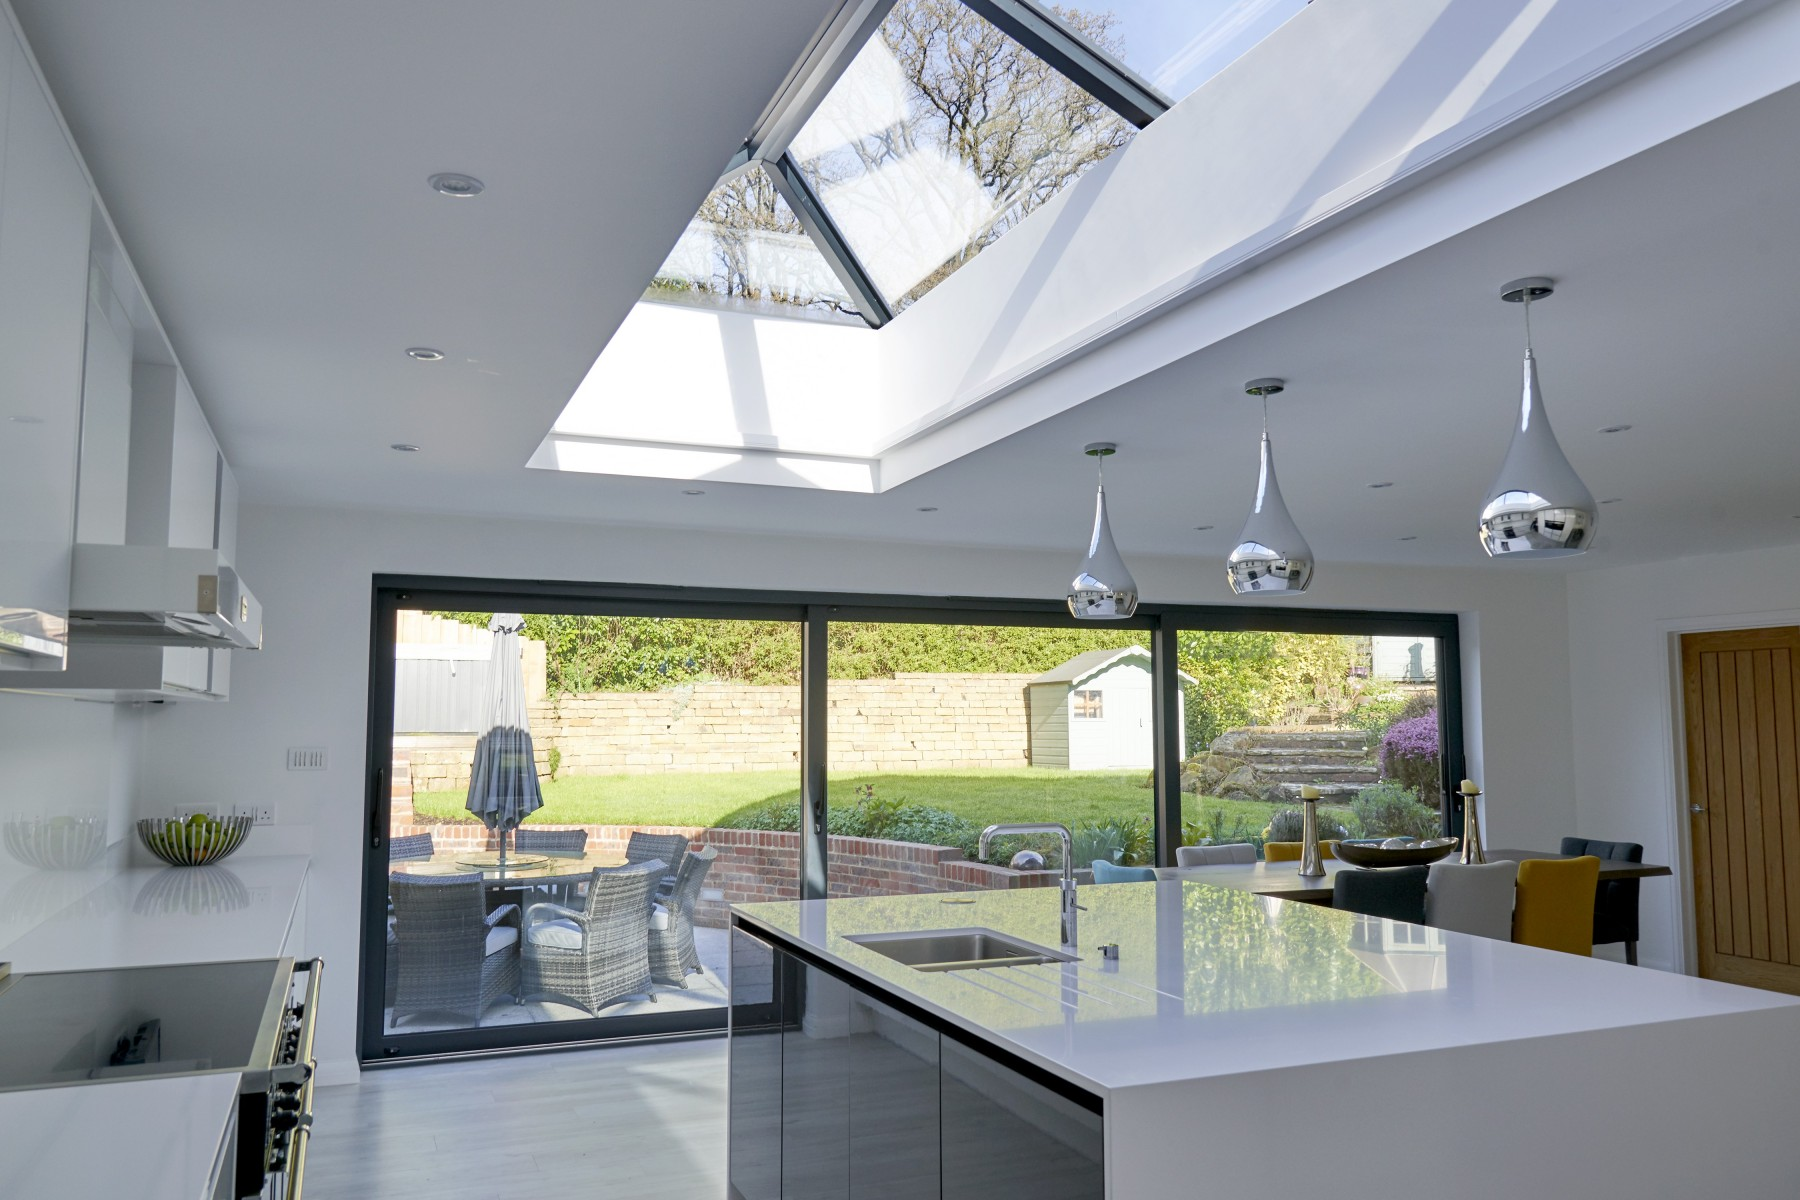 Ultrasky Lantern Roof Lanterns Uk Lantern Skylights